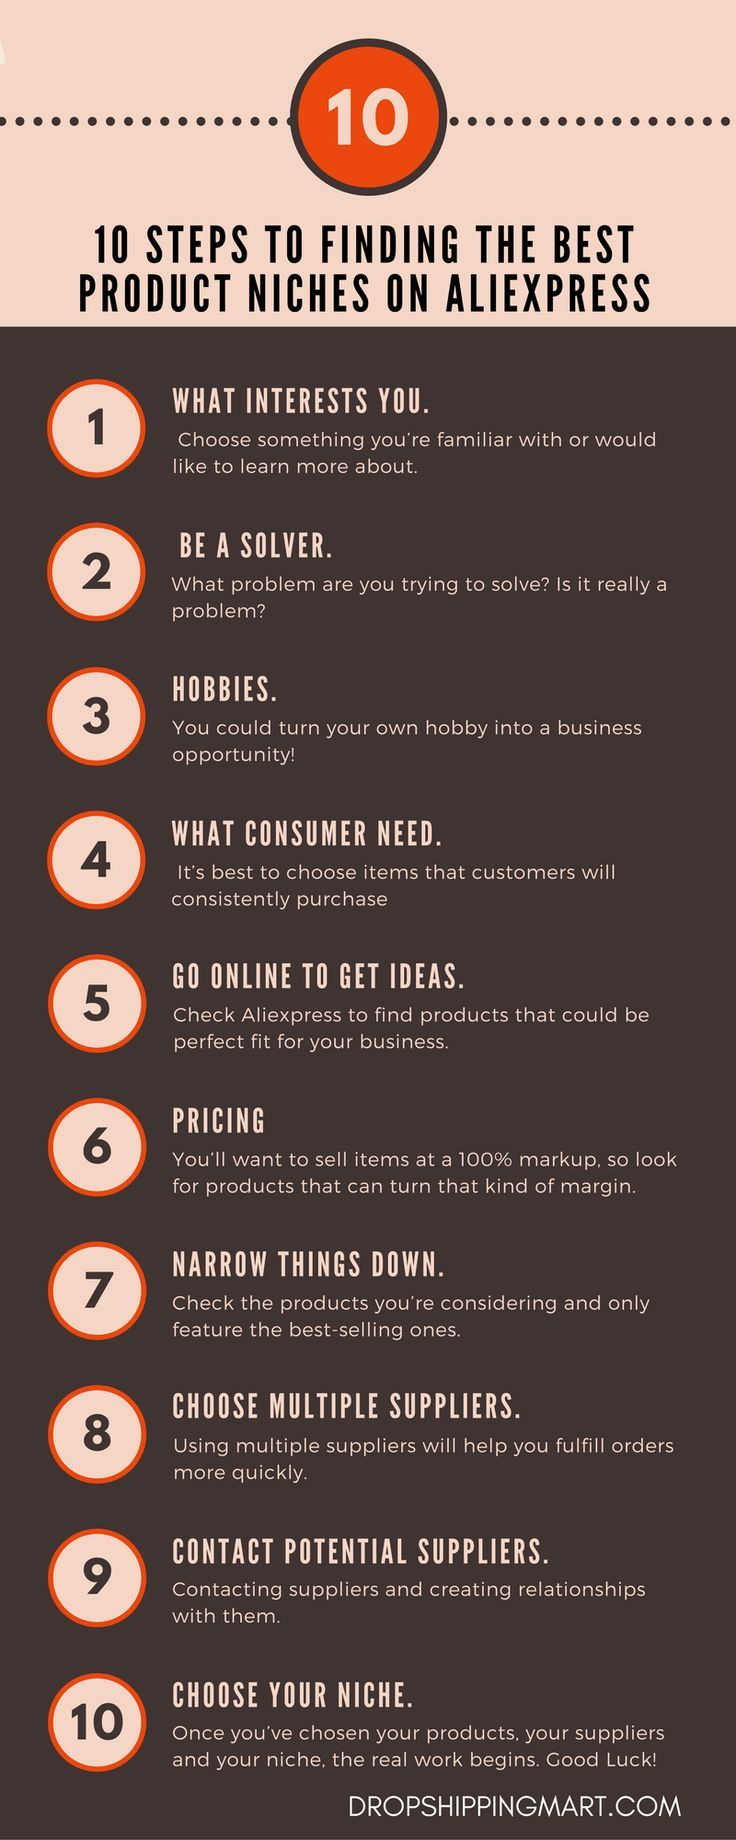 10 Steps to Finding the Best Product Niches on AliExpress